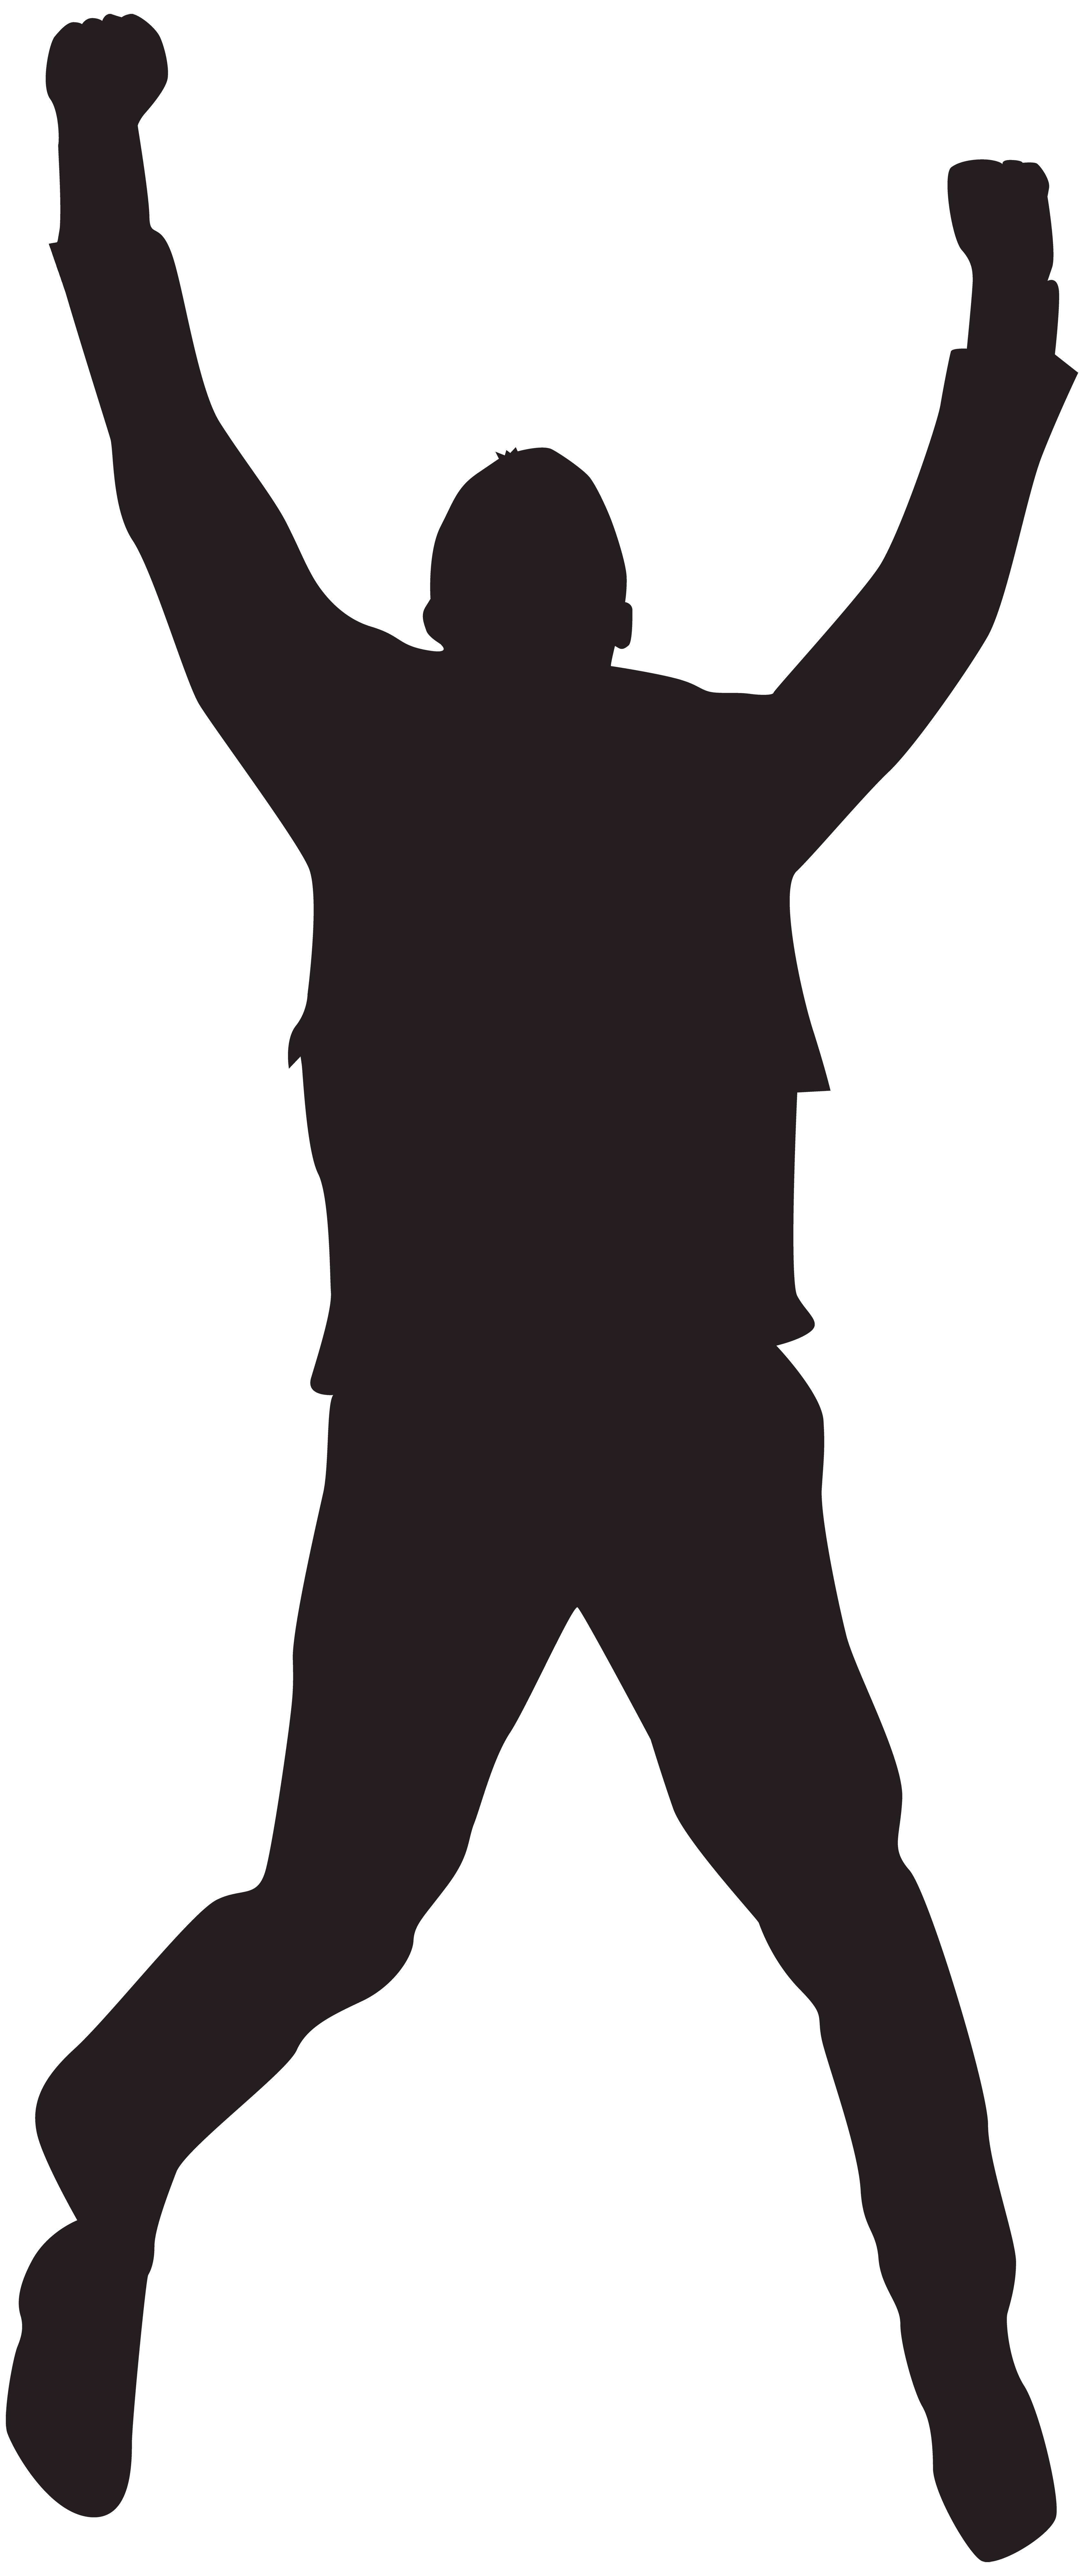 Jumping happy man png. Employee clipart silhouette